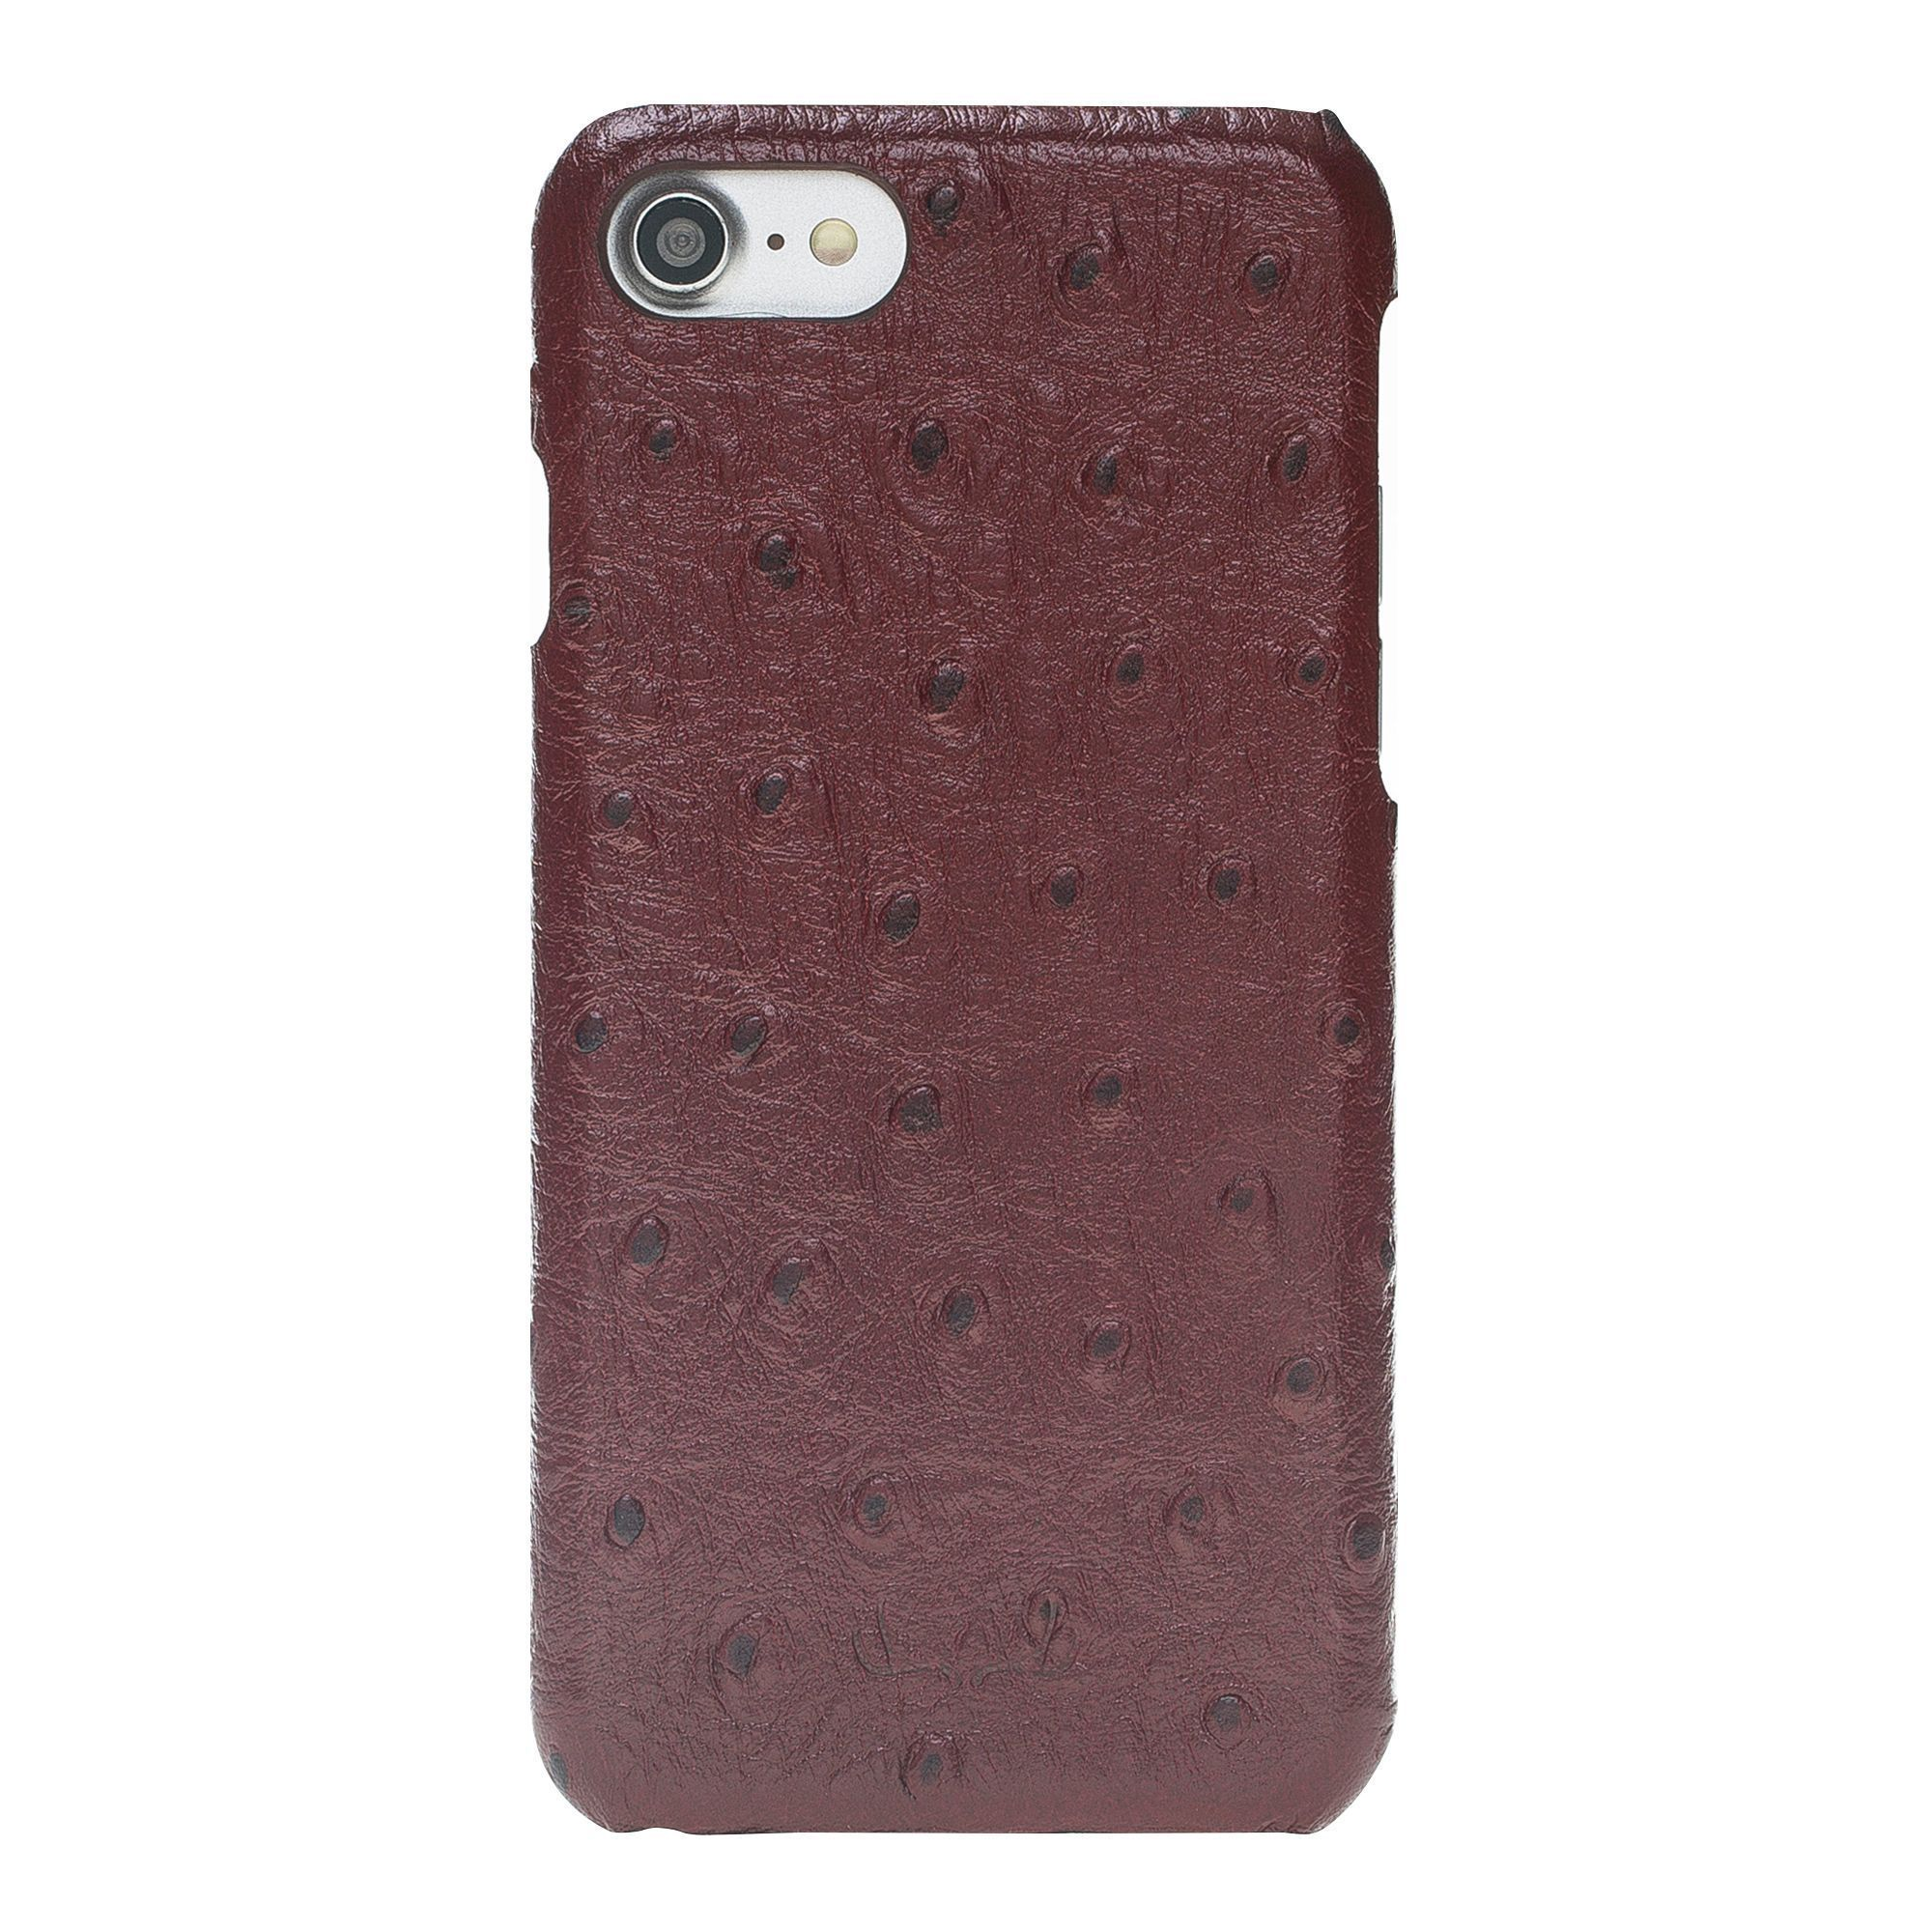 BNT Ultimate Jacket Leather Cases - Ostrich - iPhone 7/8 - Red